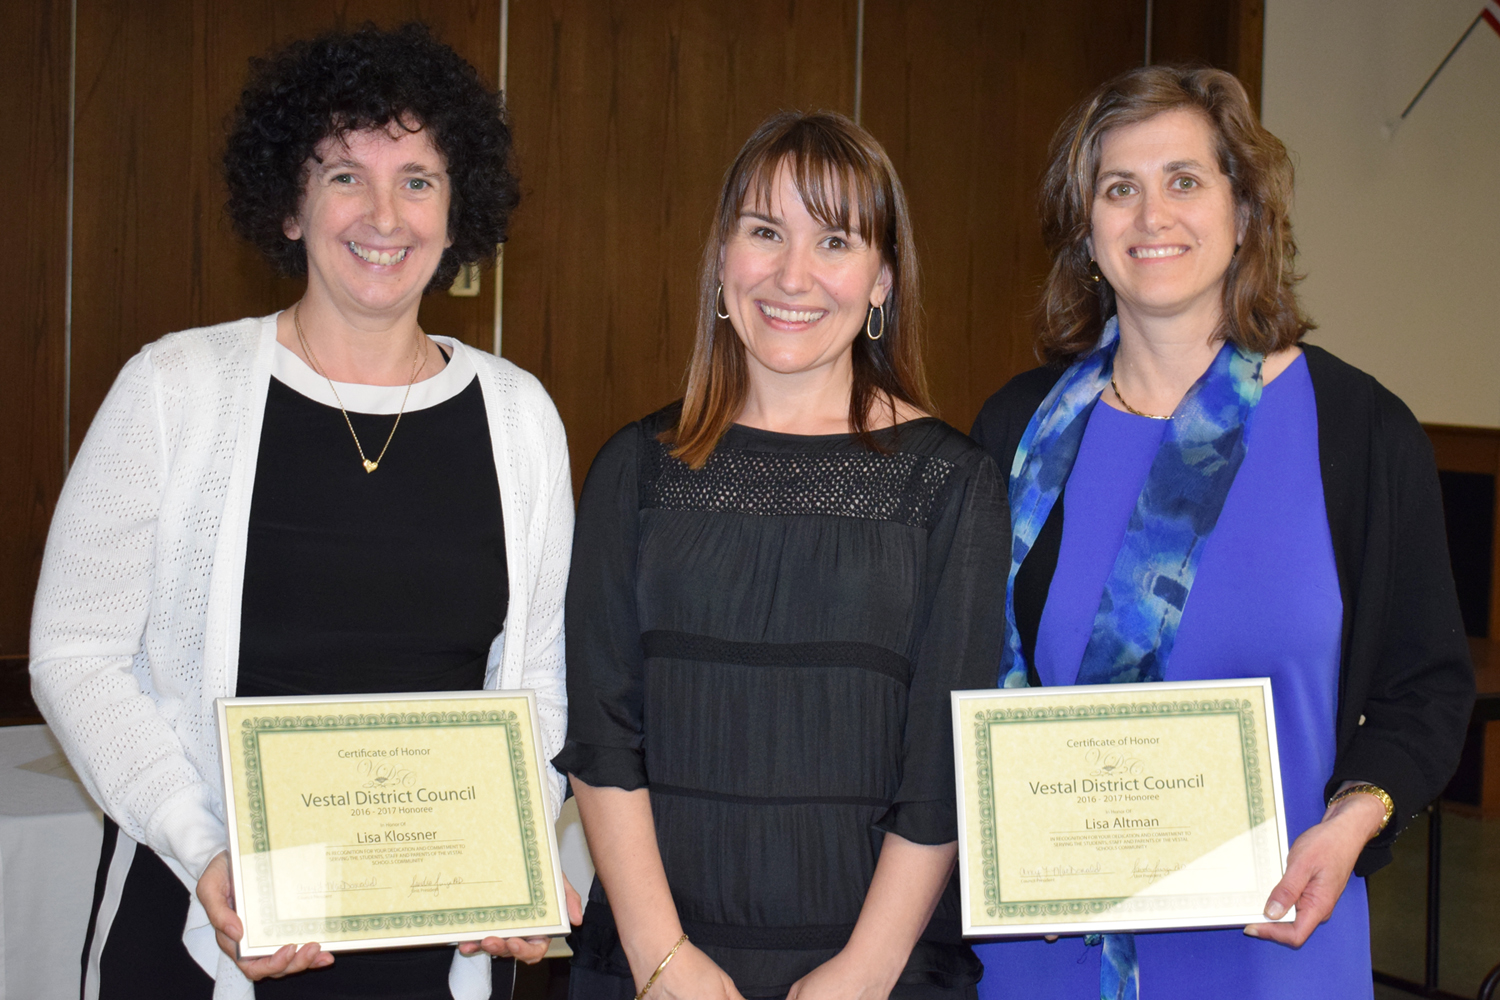 Vestal Hills P T A  Honorees Lisa Klossner and Lisa Altman receive their District Council certificat